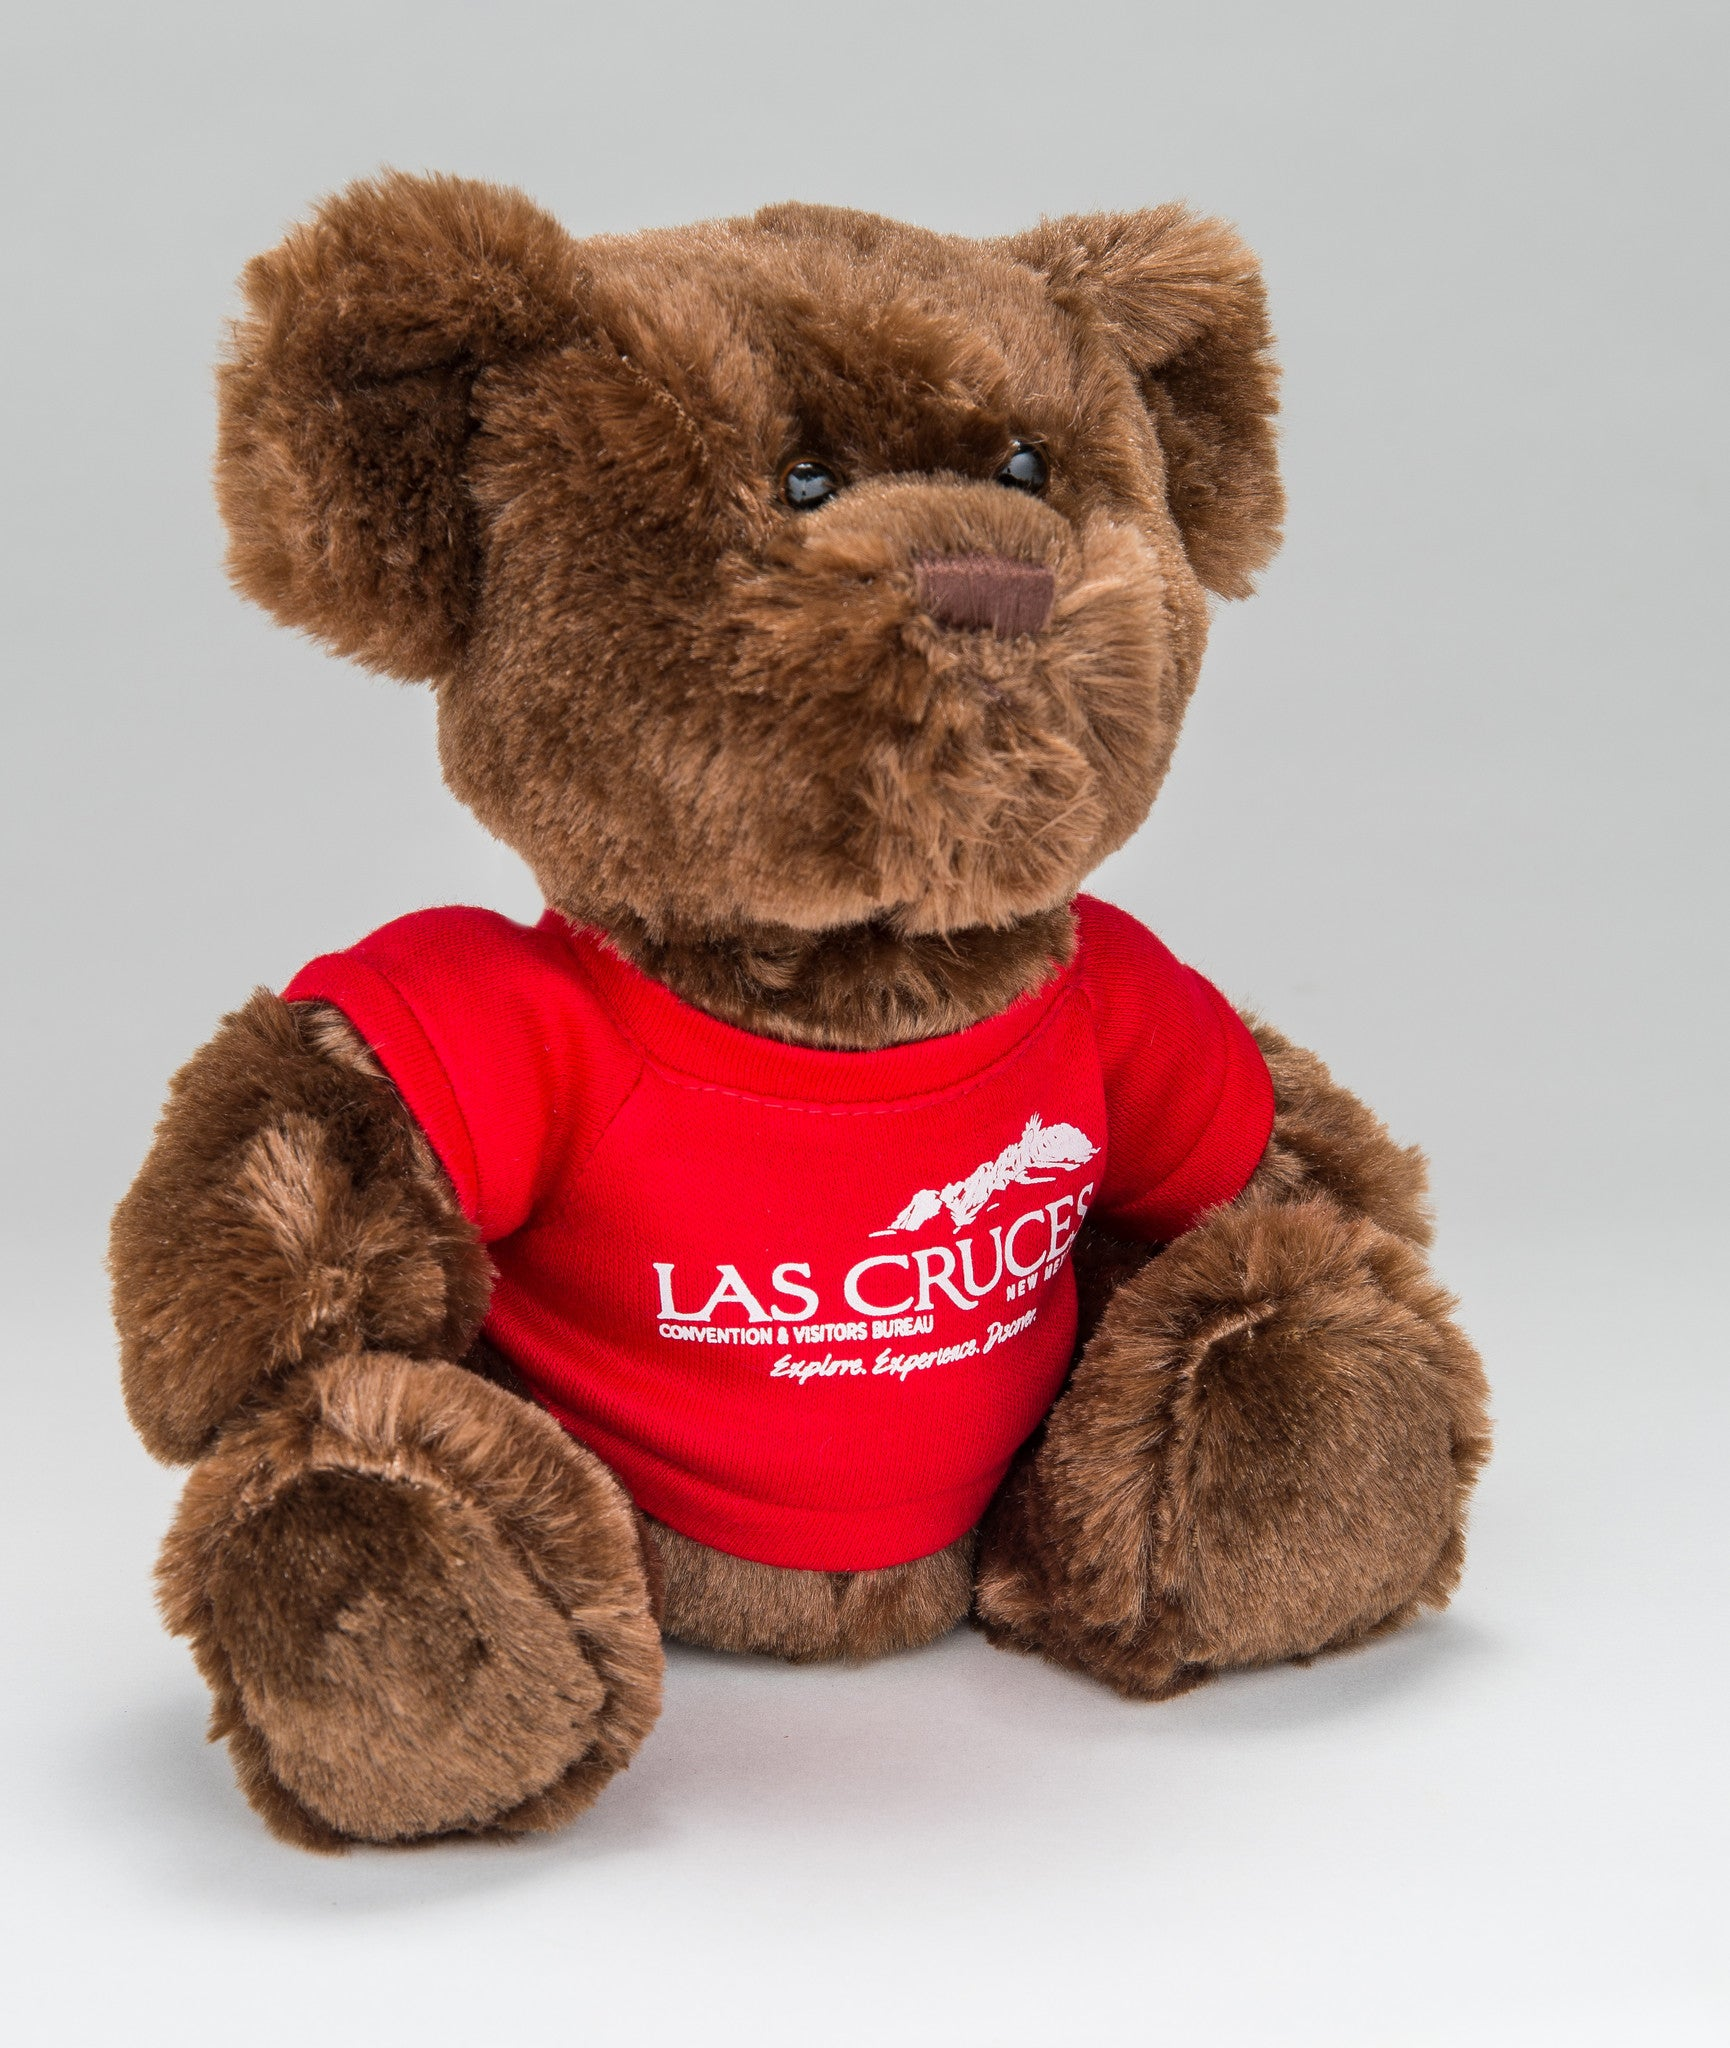 Stuffed Las Cruces Bear